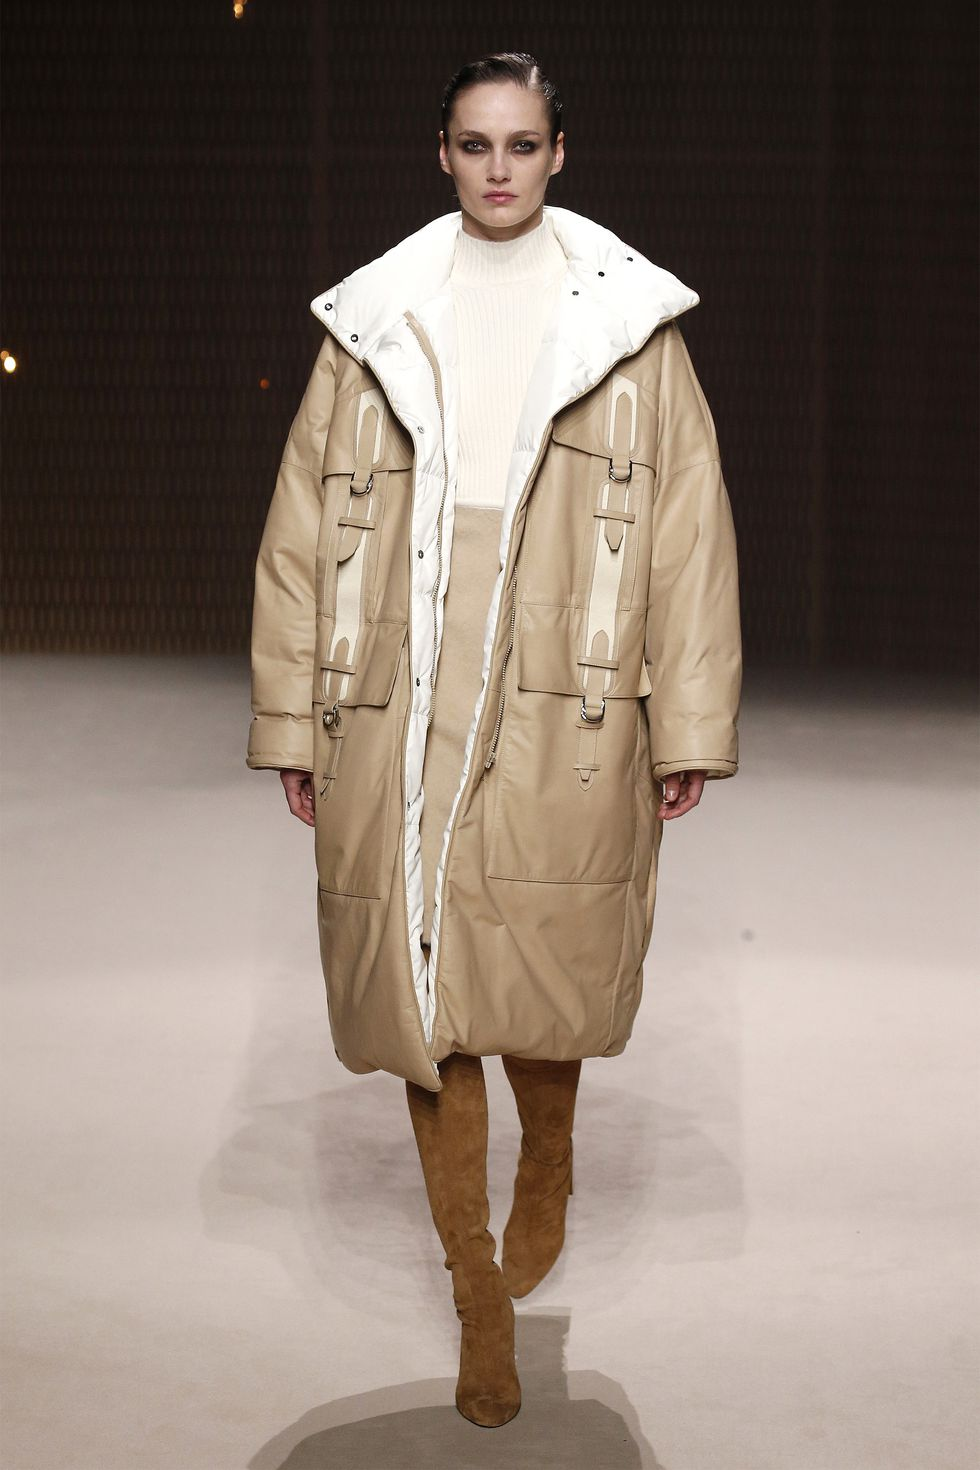 hbz-fw2019-trends-utility-01-gettyimages-1133266459.jpg